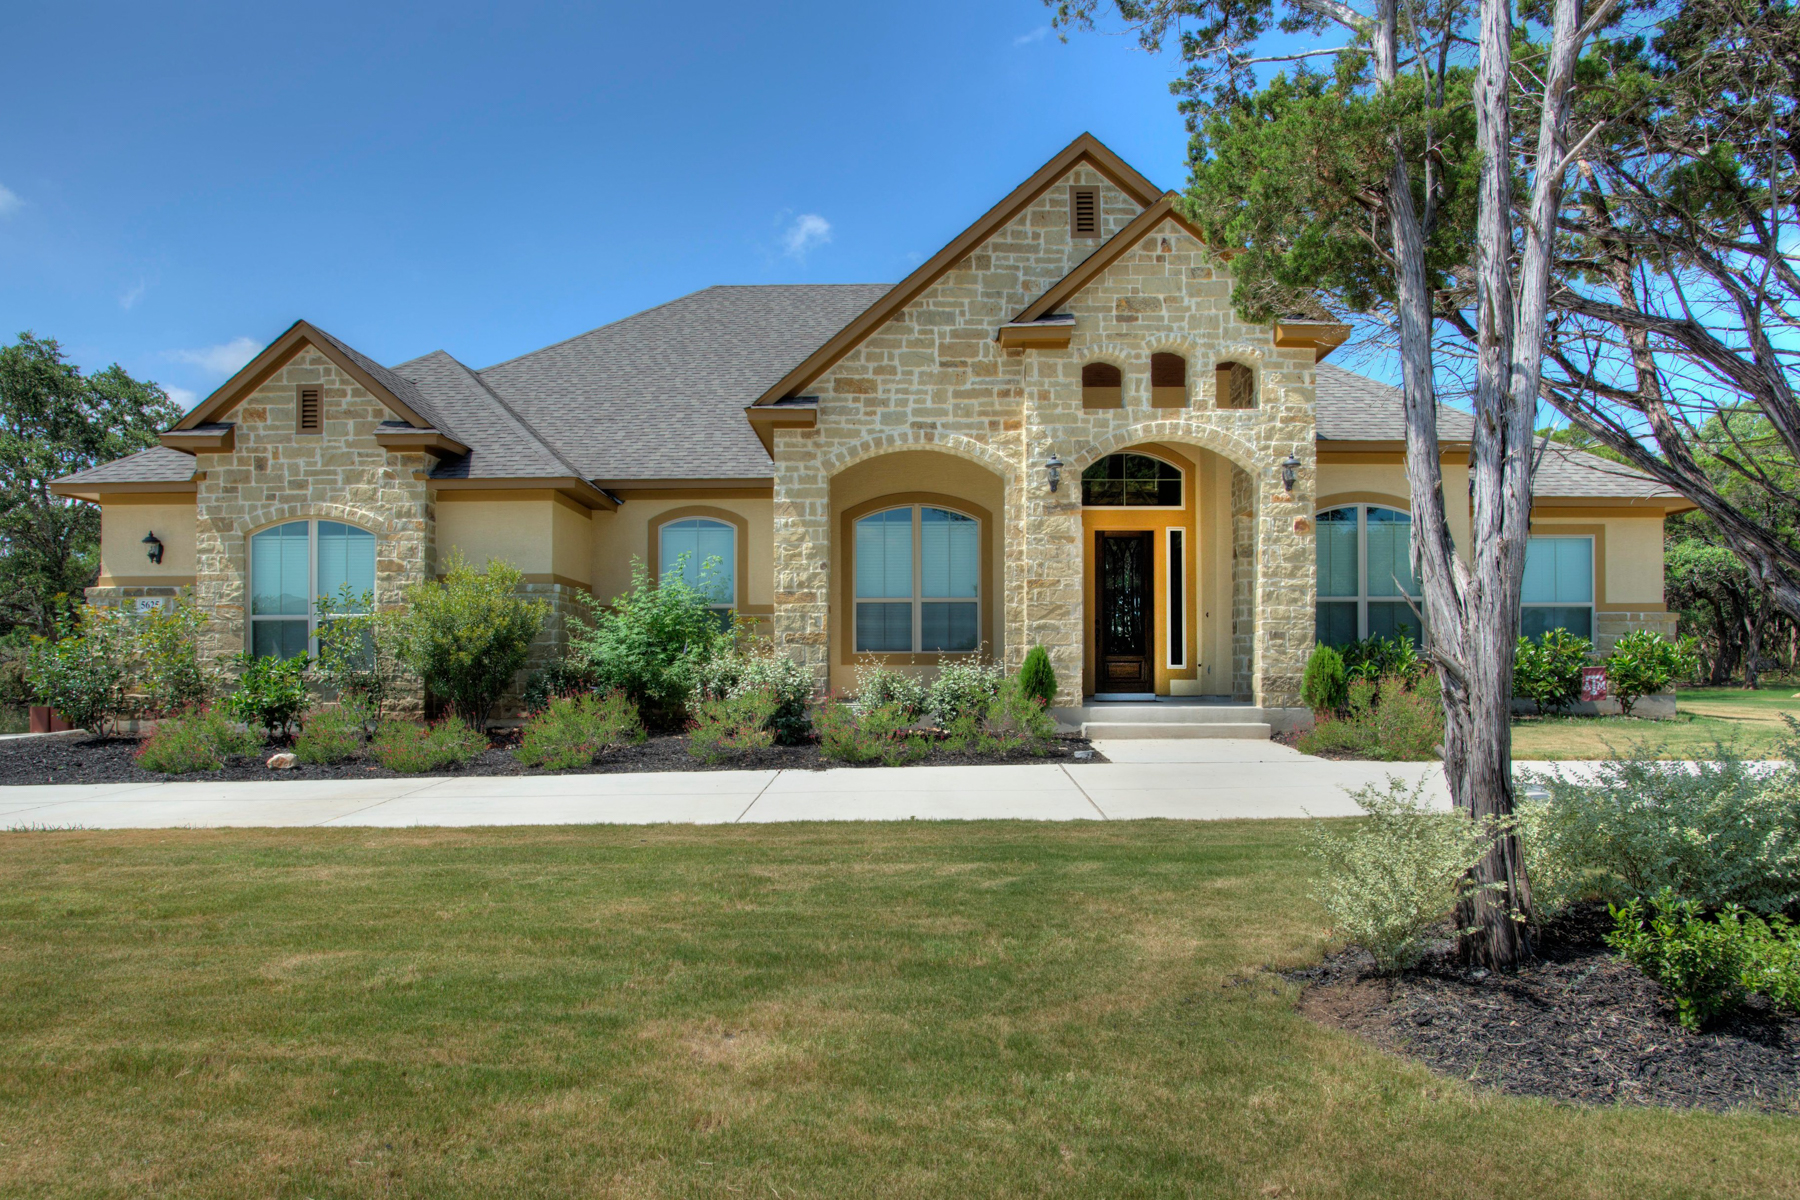 Single Family Home for Sale at Gorgeous Home in Copper Creek 5625 Copper Crk New Braunfels, Texas 78132 United States